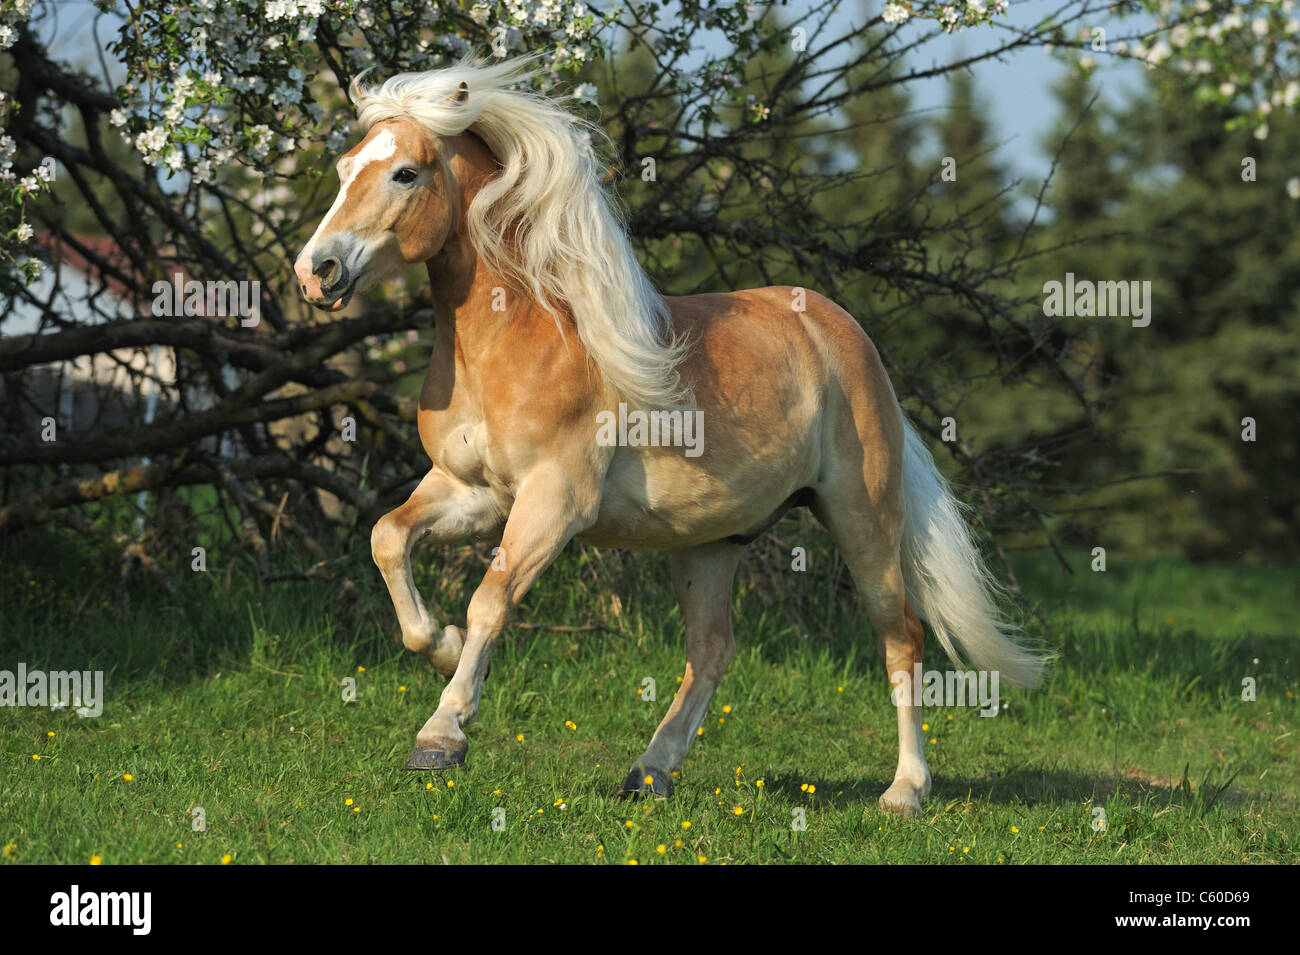 Haflinger Horse (Equus ferus caballus). Gelding in gallop on a meadow. - Stock Image